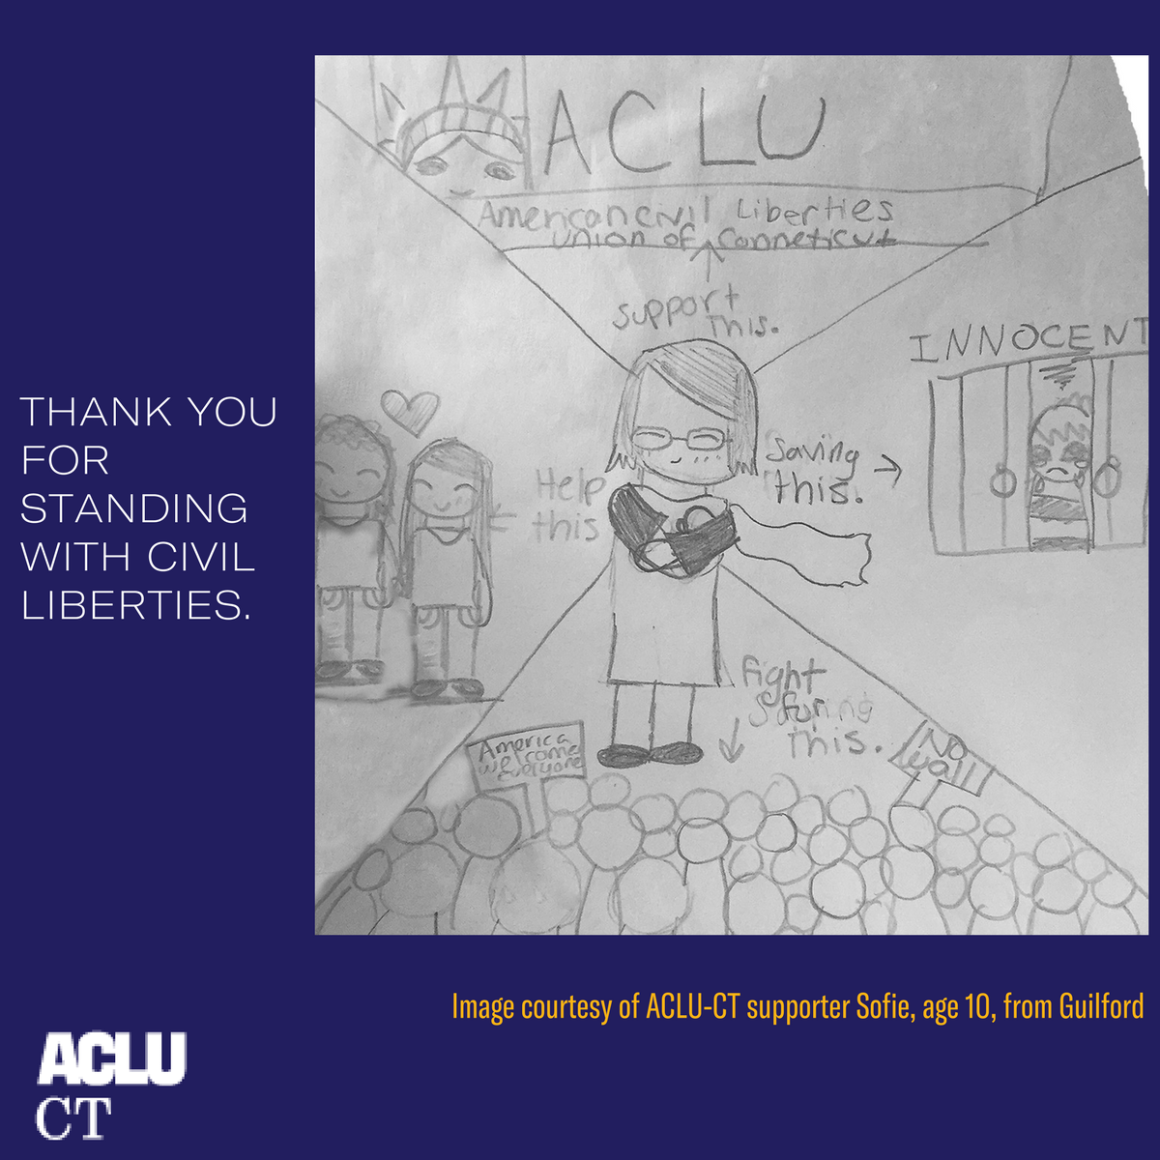 ACLU of Connecticut / CT thank you for standing with civil liberties. Superhero stands next to criminal justice reform, LGBTQ rights, no ban no wall protest